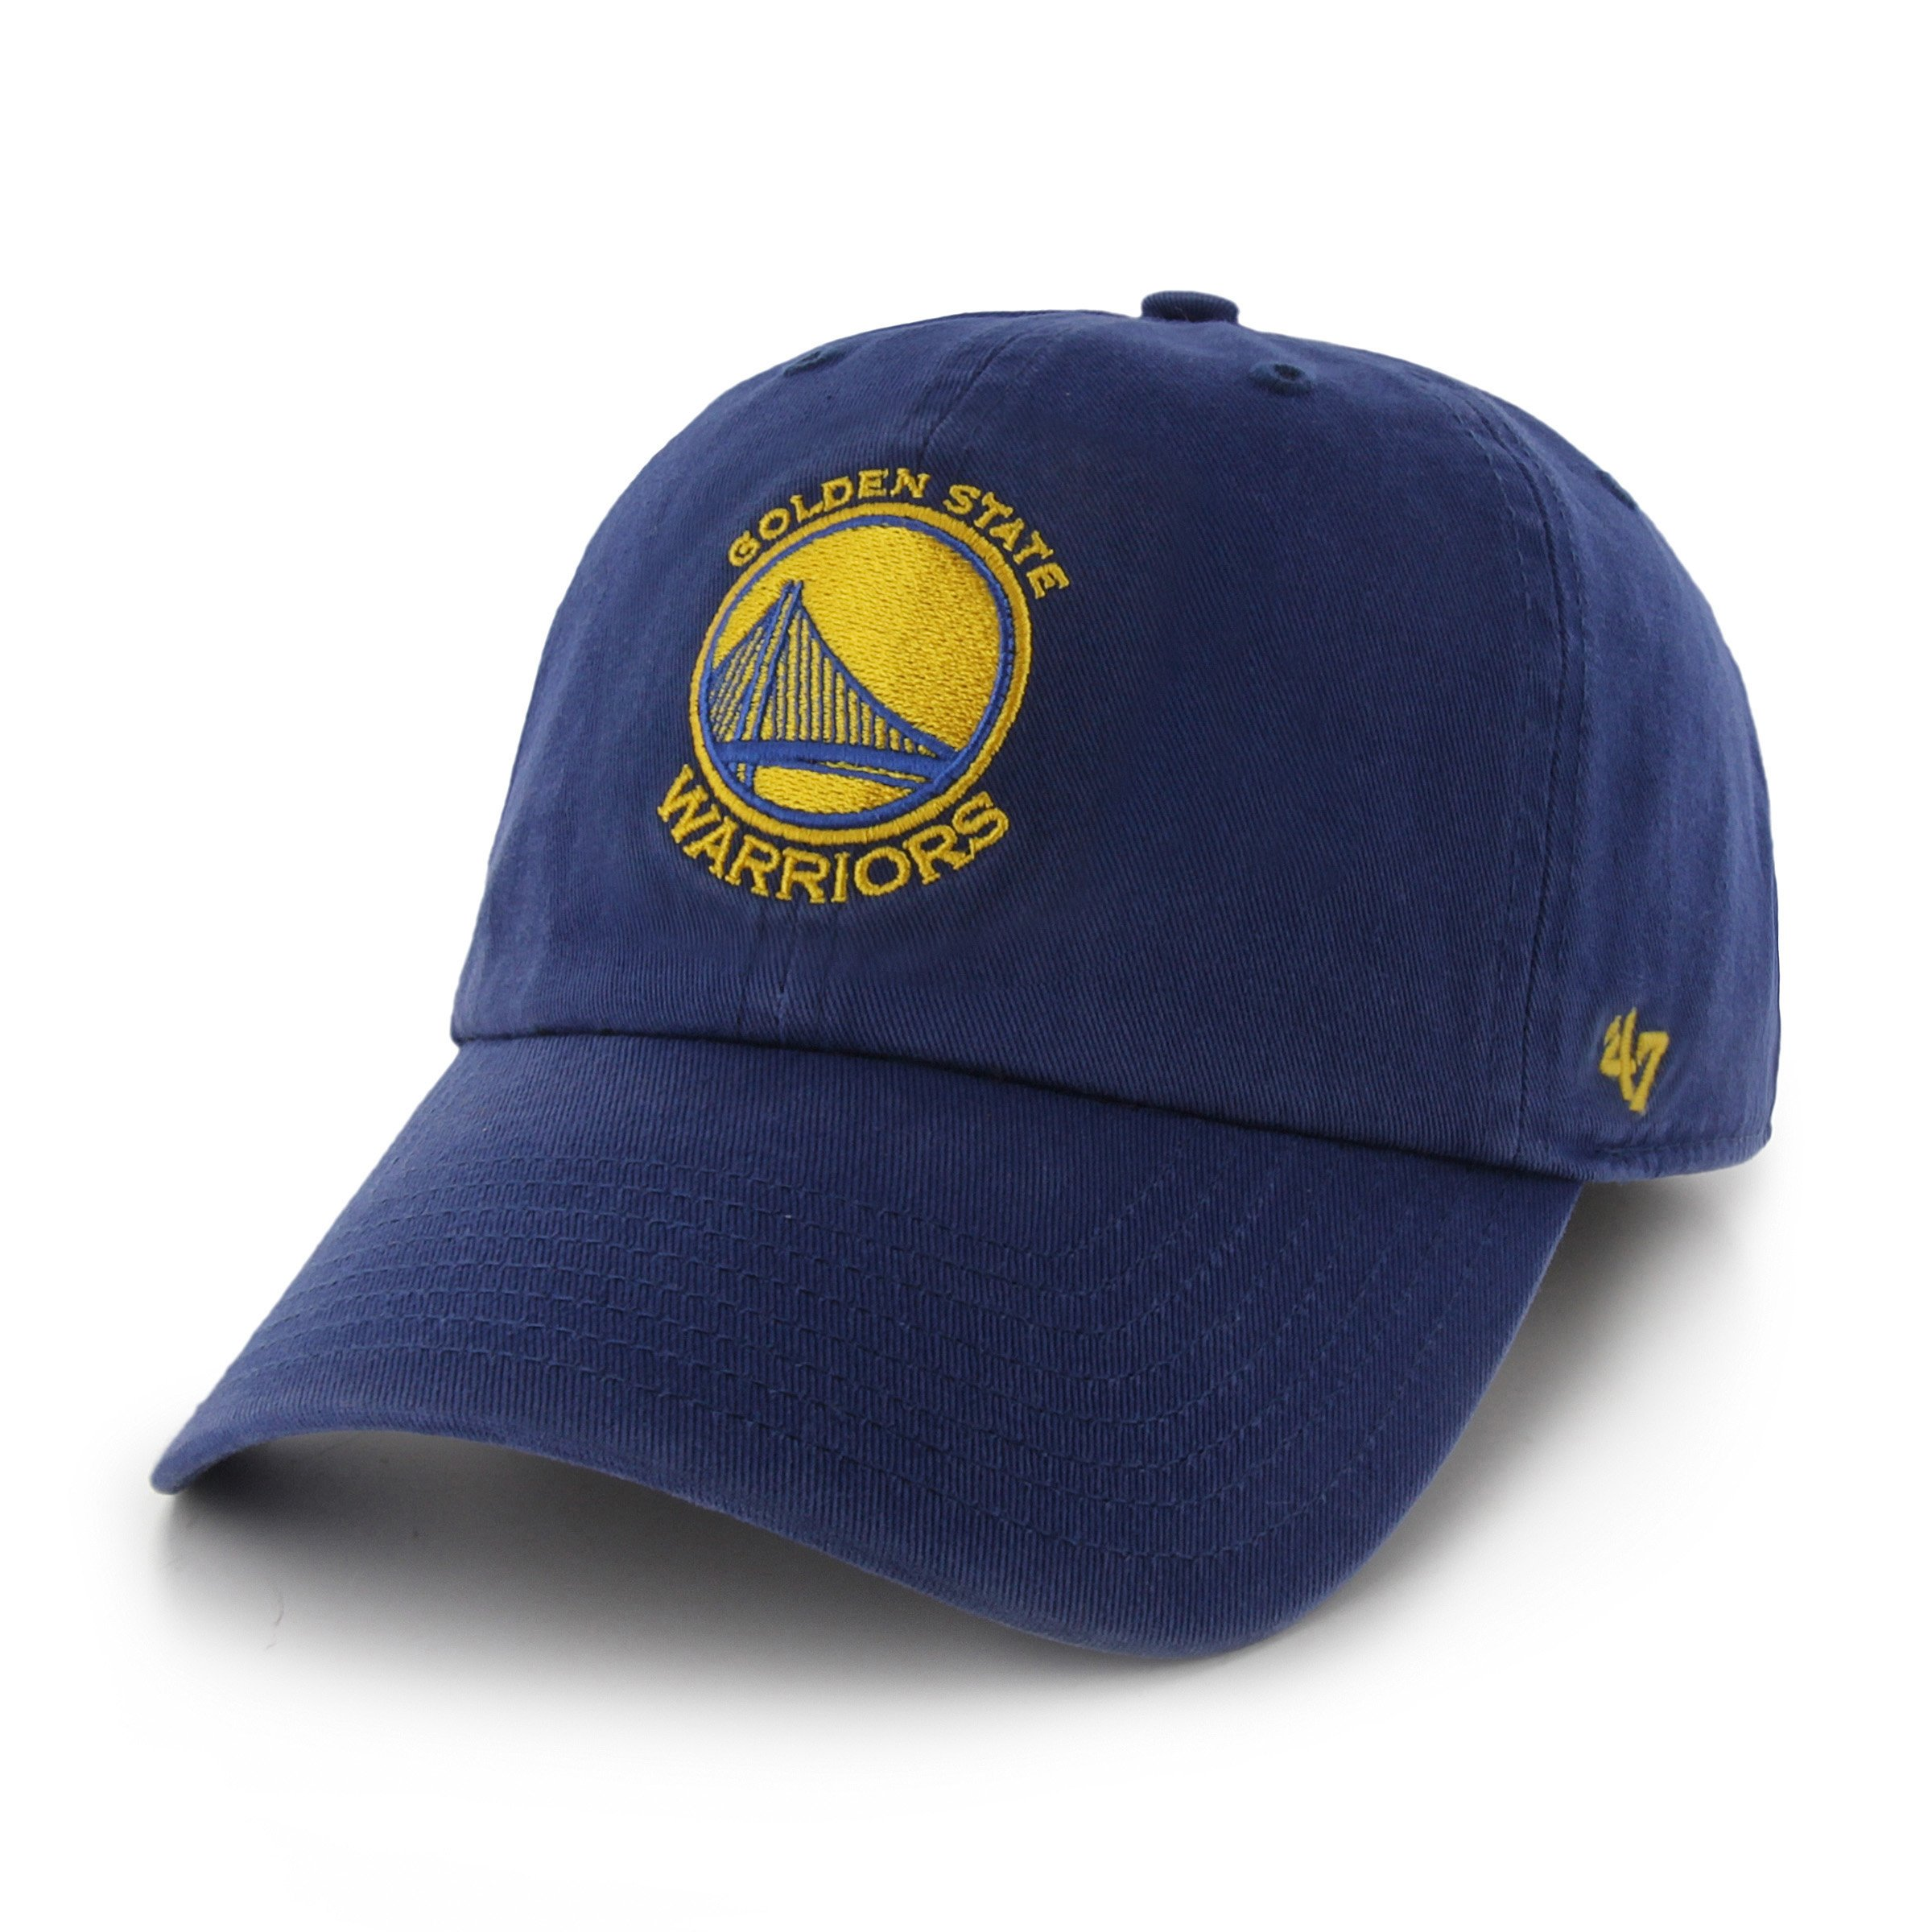 '47 NBA Golden State Warriors Clean Up Adjustable Hat, Royal, One Size by '47